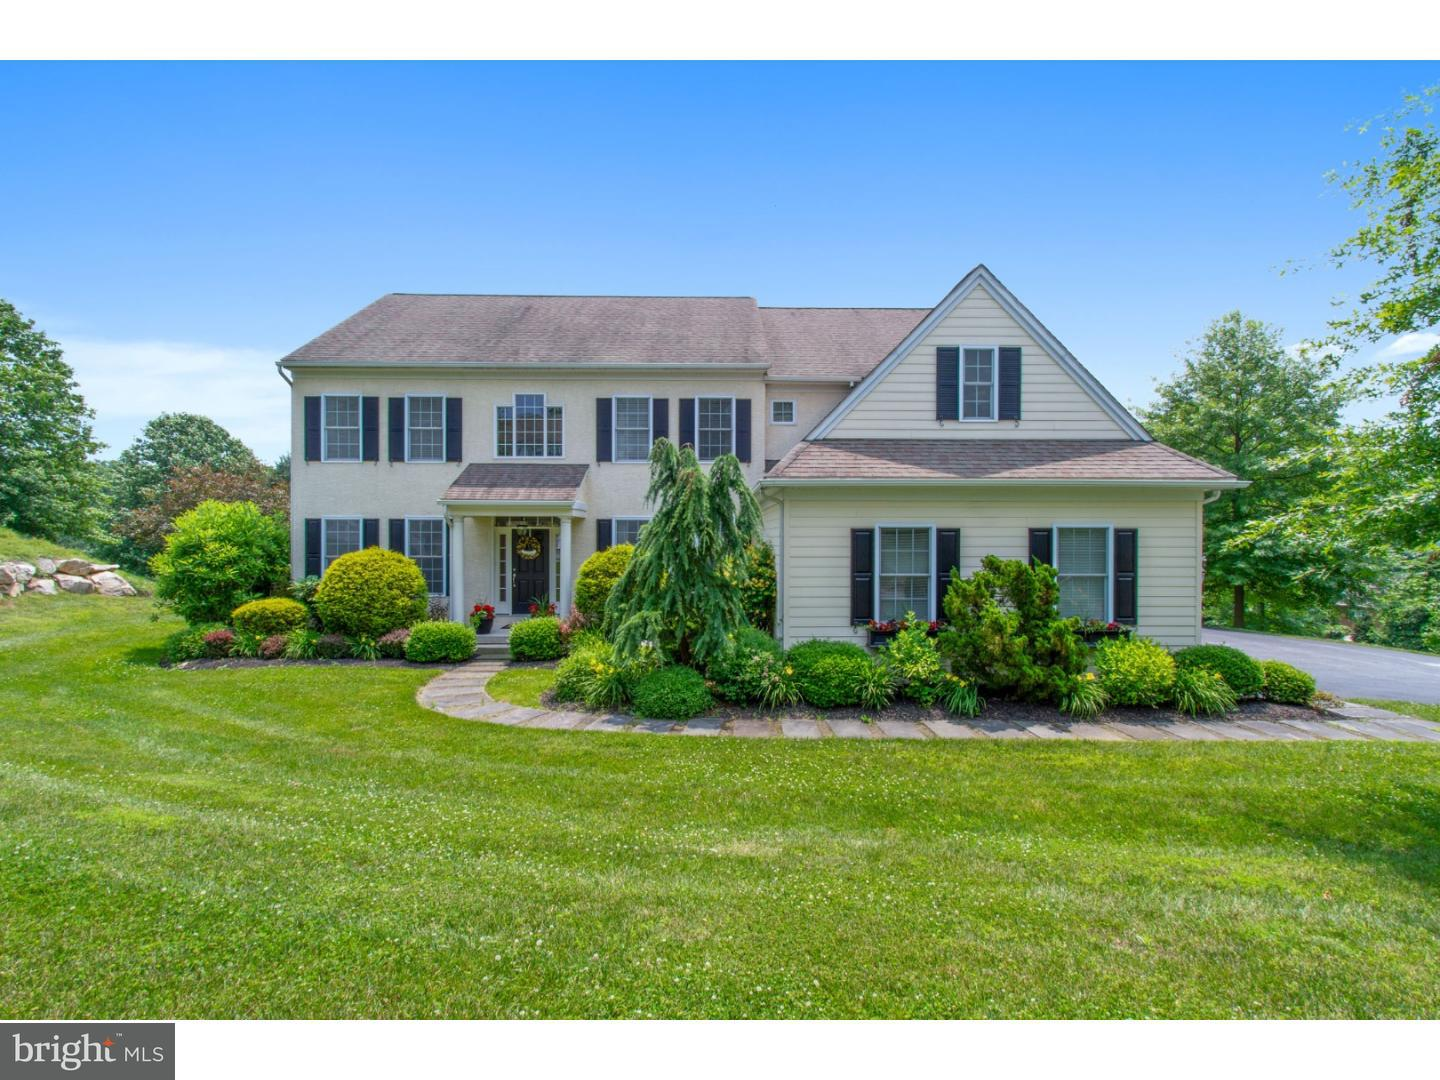 122 HIDDEN POND WAY, WEST CHESTER - Listed at $750,000, WEST CHESTER